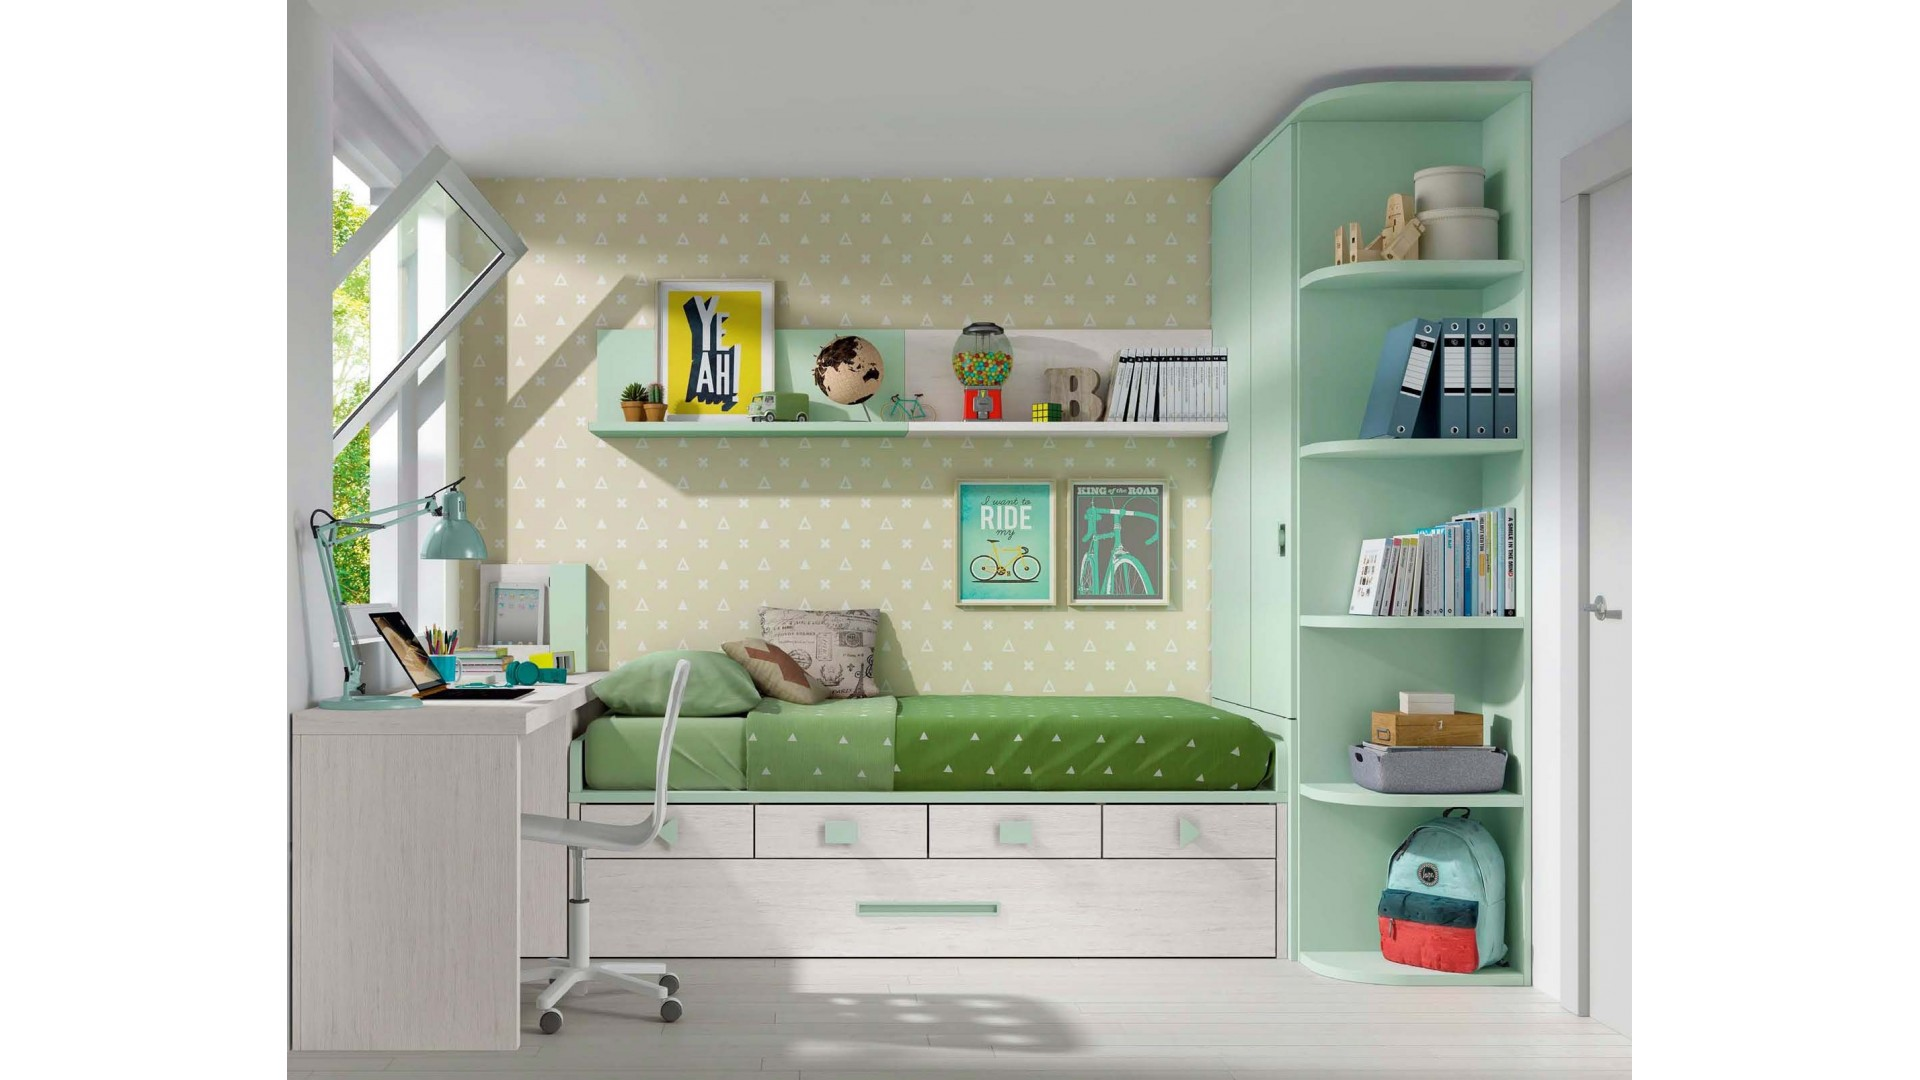 lit pour enfant ultra pratique gain de place glicerio. Black Bedroom Furniture Sets. Home Design Ideas